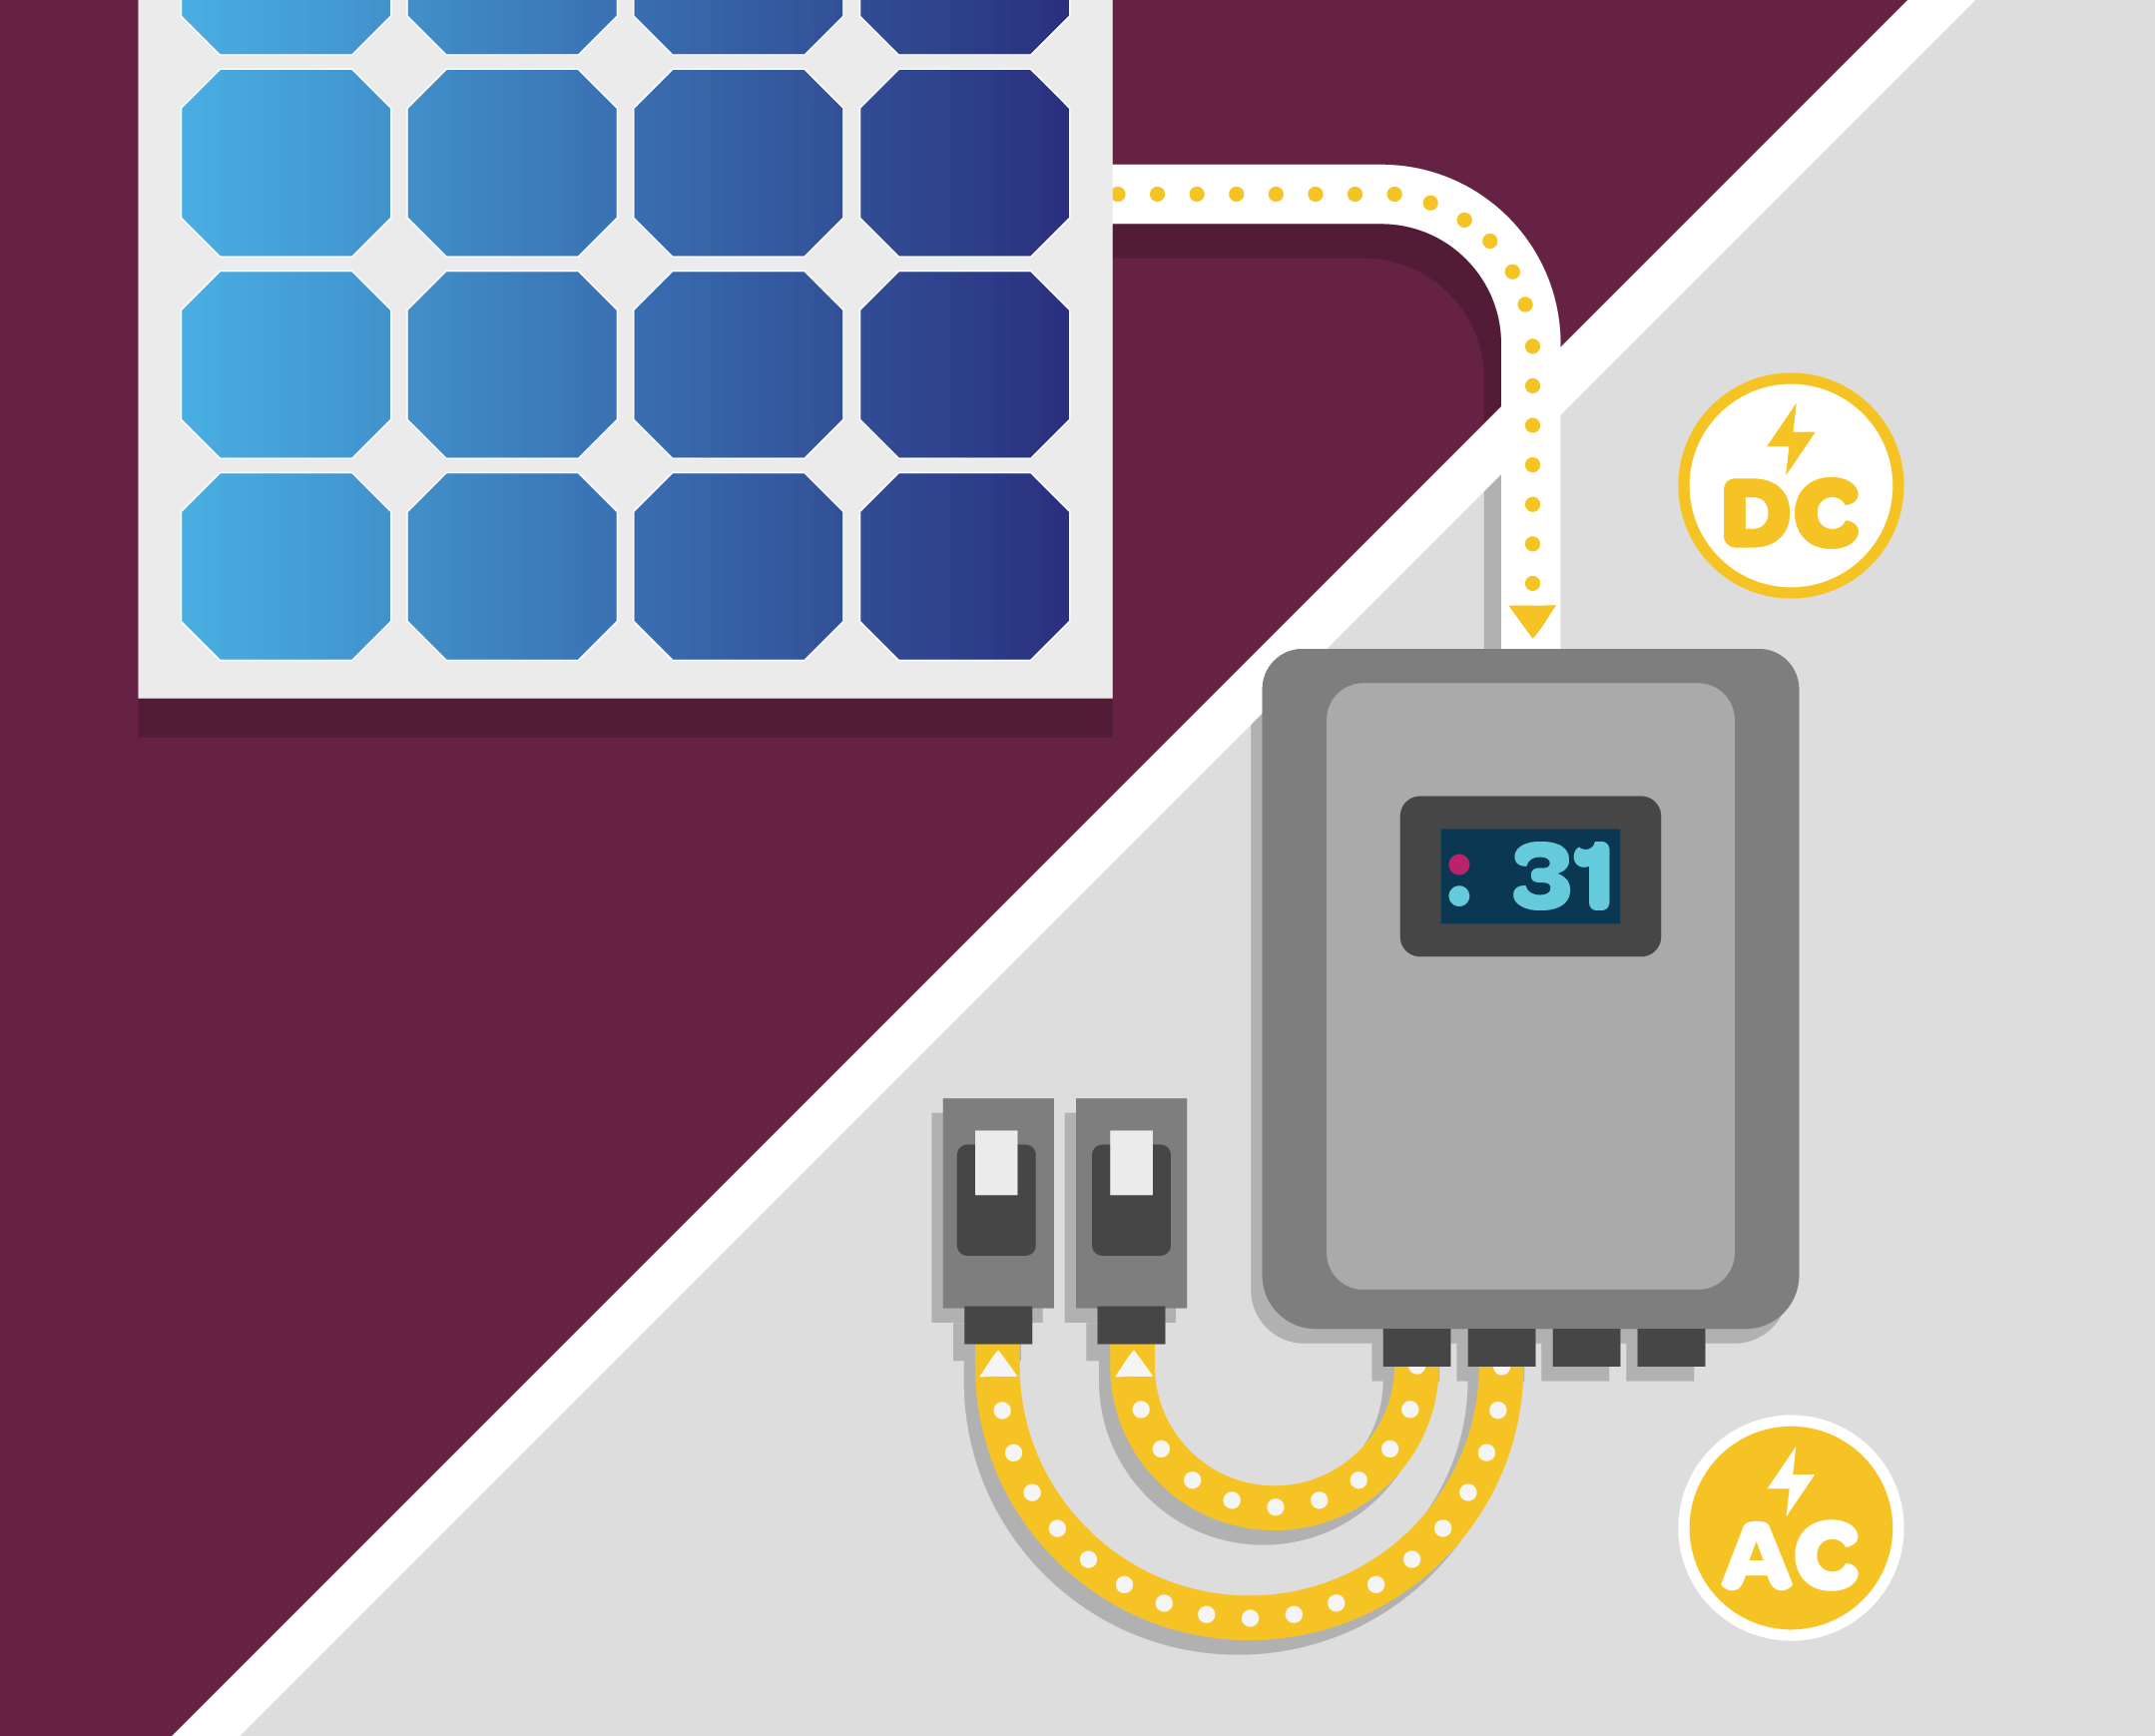 Illustration of solar energy panels and a DC converter